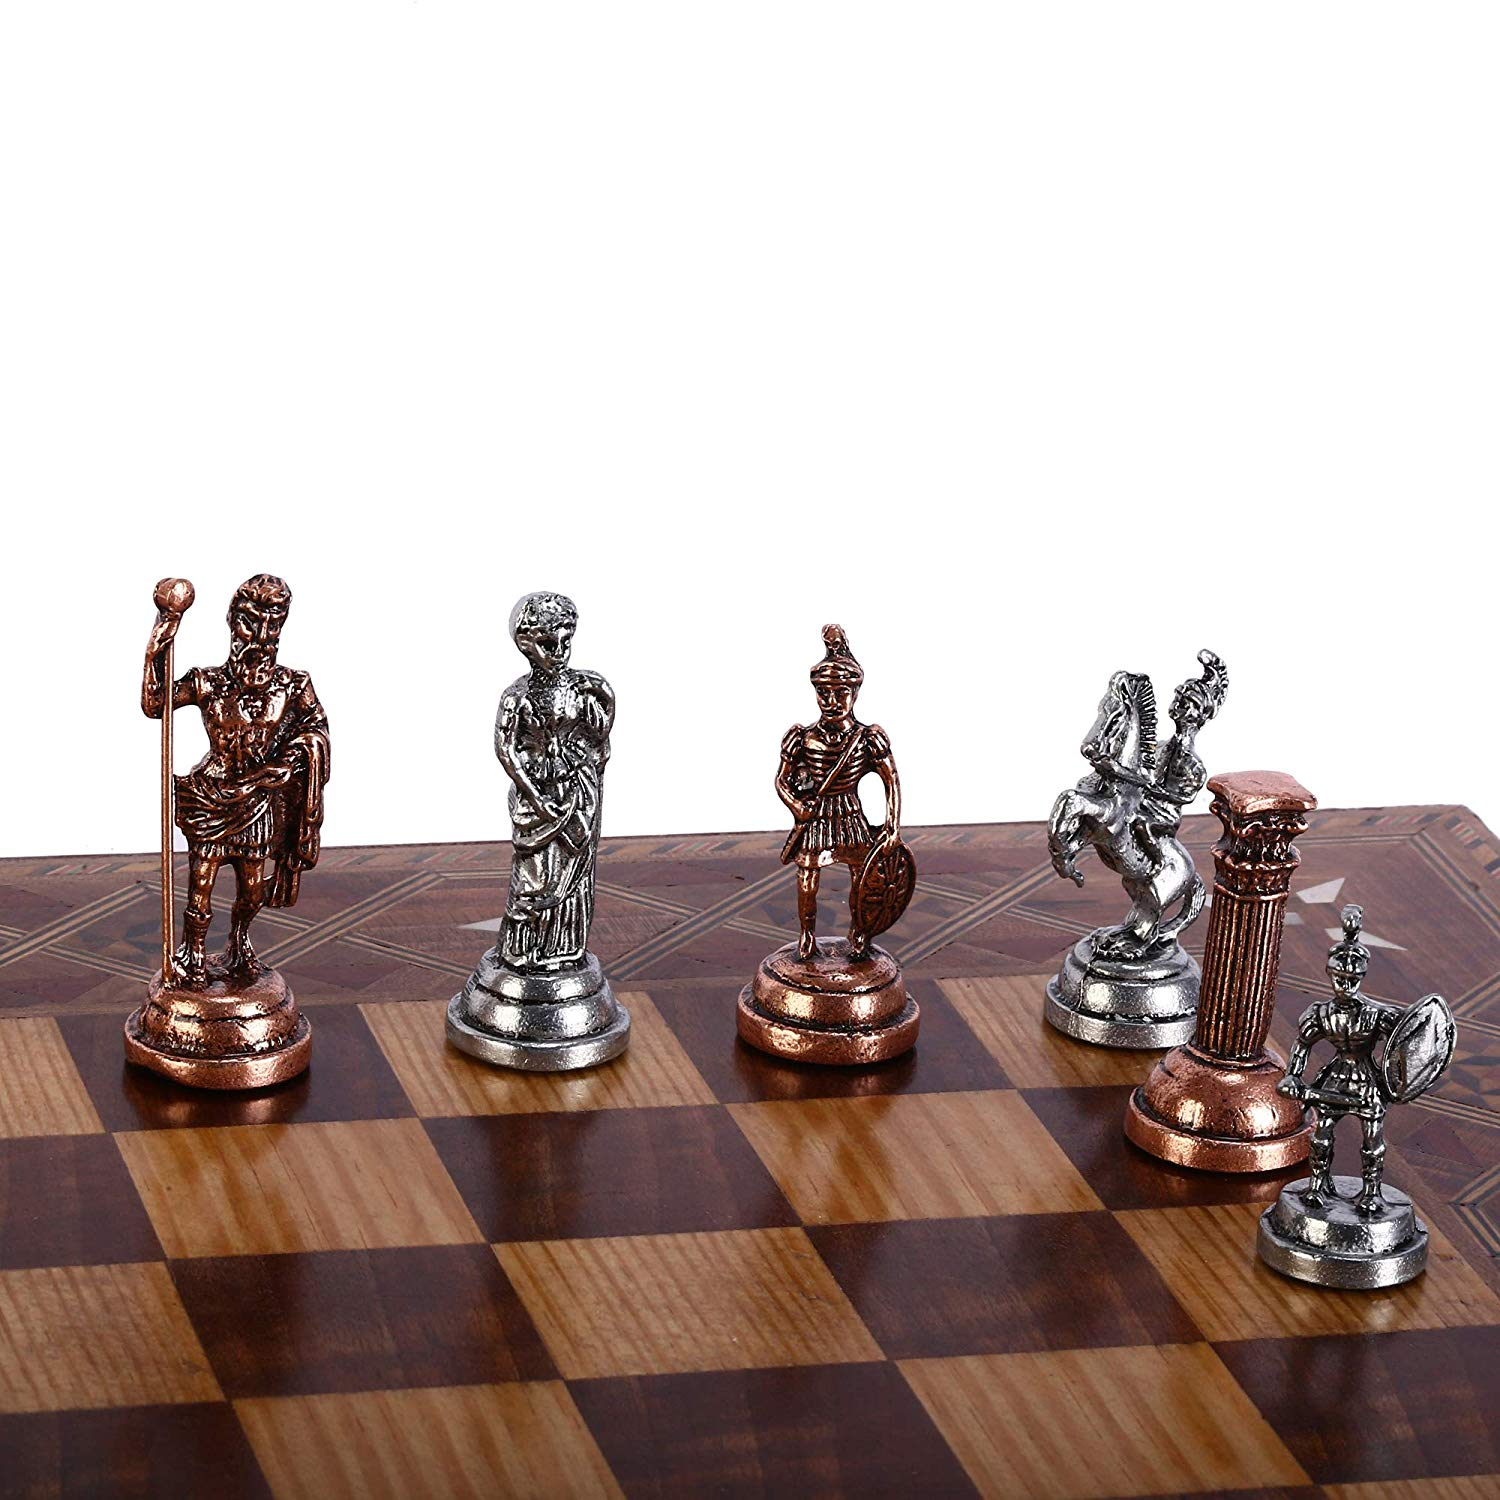 (Only 32 Chess Pieces) Antique Copper Rome Figures Handmade Cool Chess Pieces King 7 cm (Board is not Included)